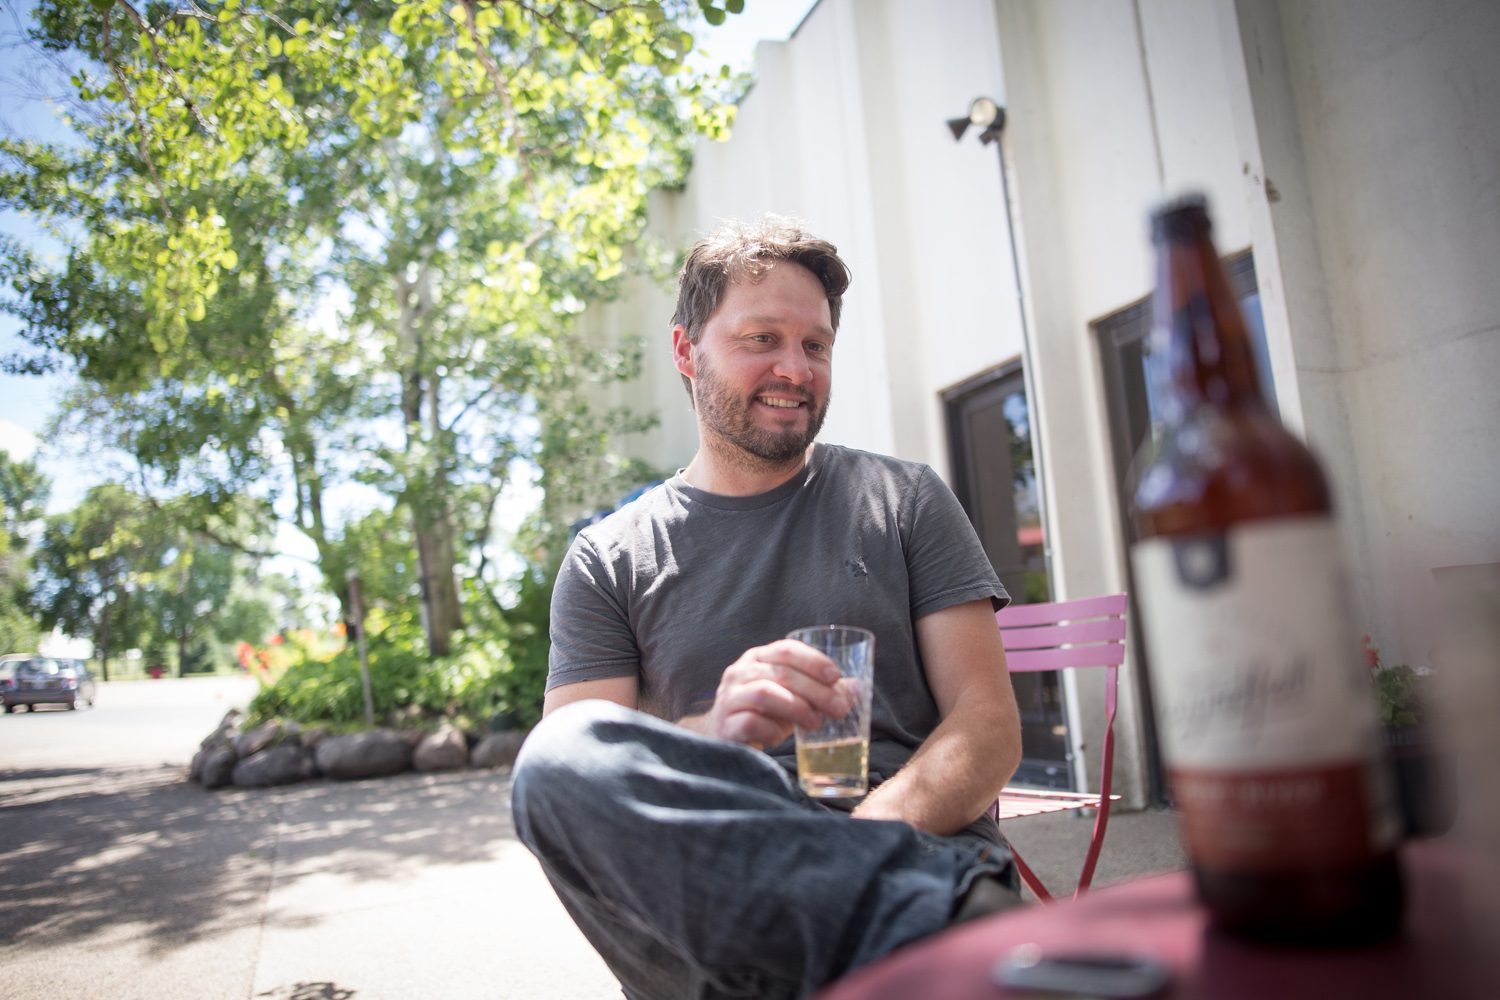 Rob Fisk, founder of Wyndfall Cyder, has been named the new head cidermaker of Minneapolis Cider Company in Northeast Minneapolis // Photo by Aaron Davidson